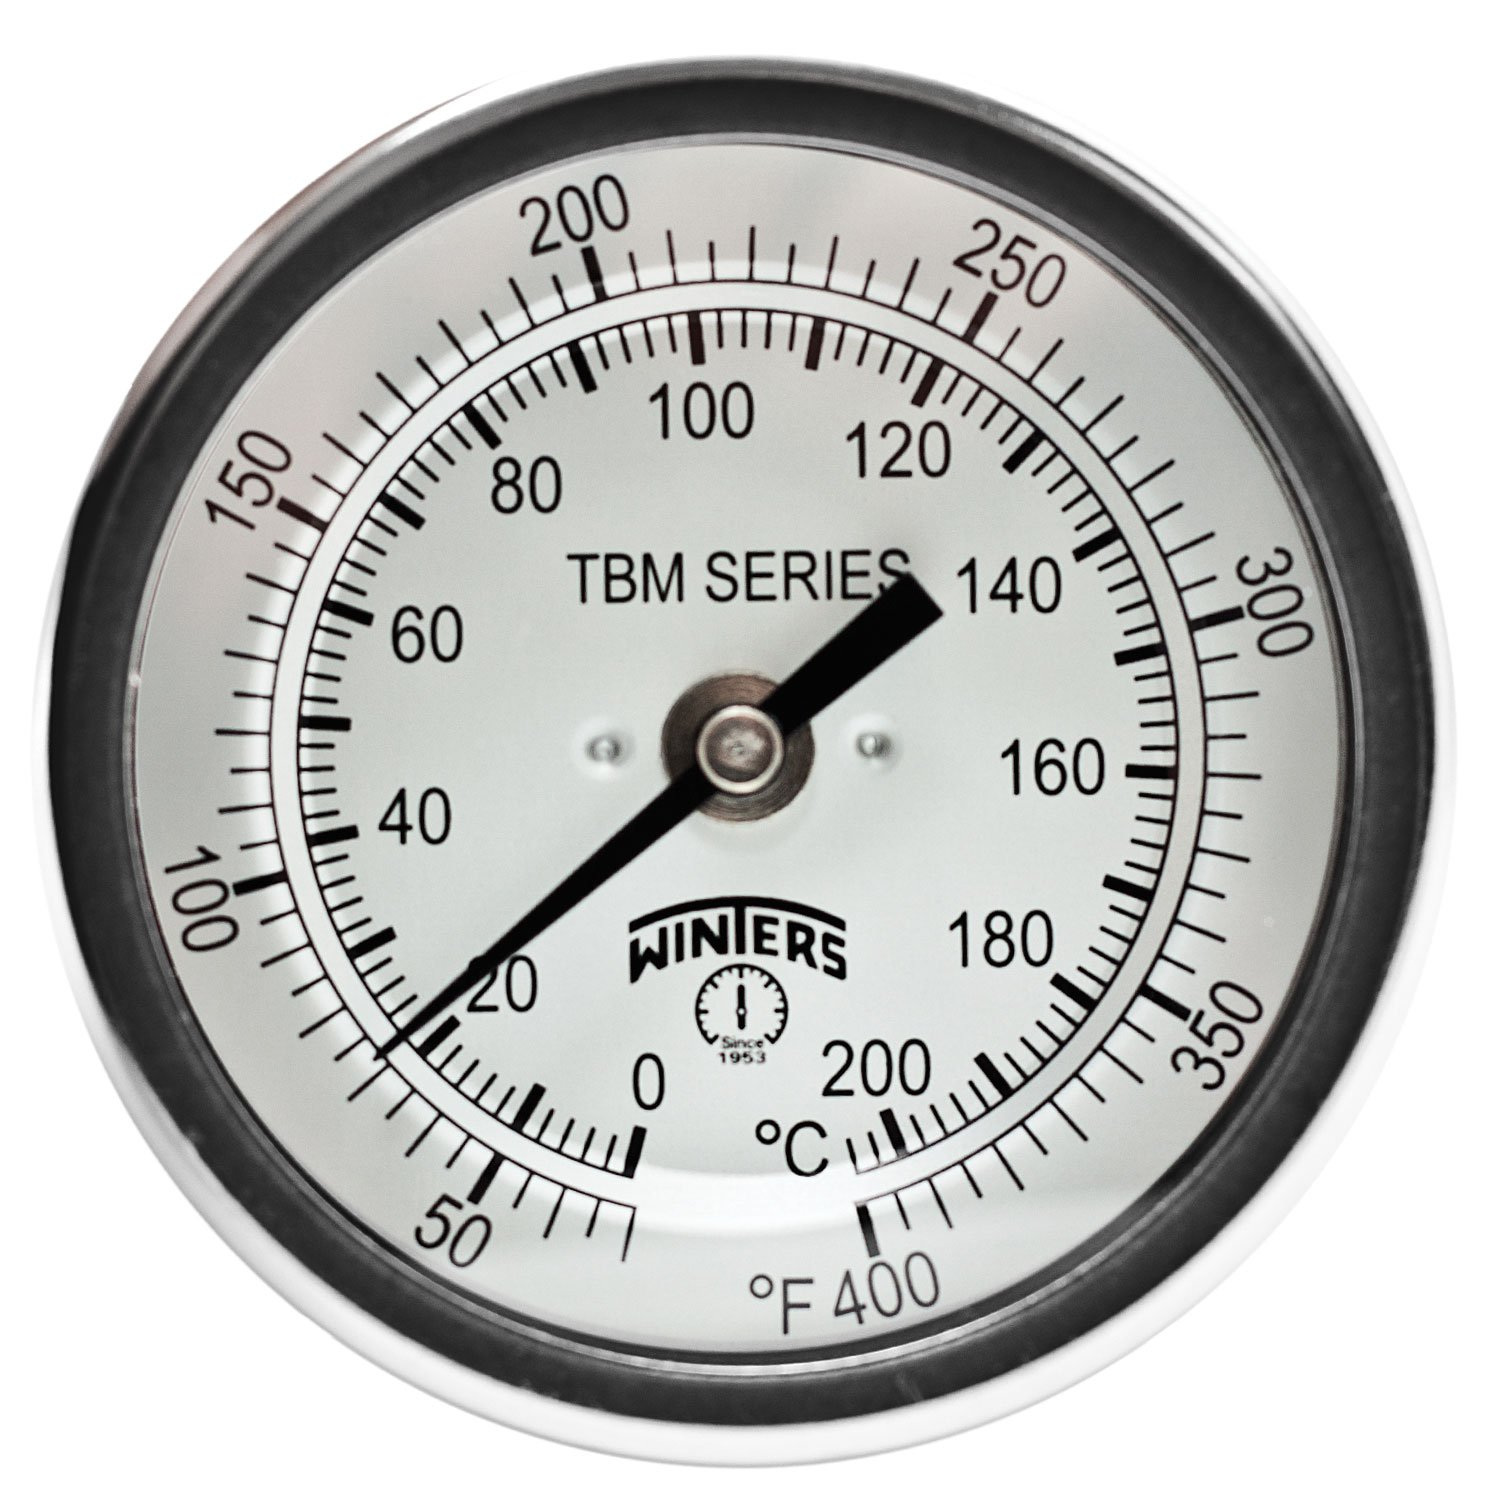 Winters TBM Series Stainless Steel 304 Dual Scale Bi-Metal Thermometer, 4'' Stem, 1/2'' NPT Fixed Center Back Mount Connection, 3'' Dial, 50-400 F/C Range by Winters Instruments